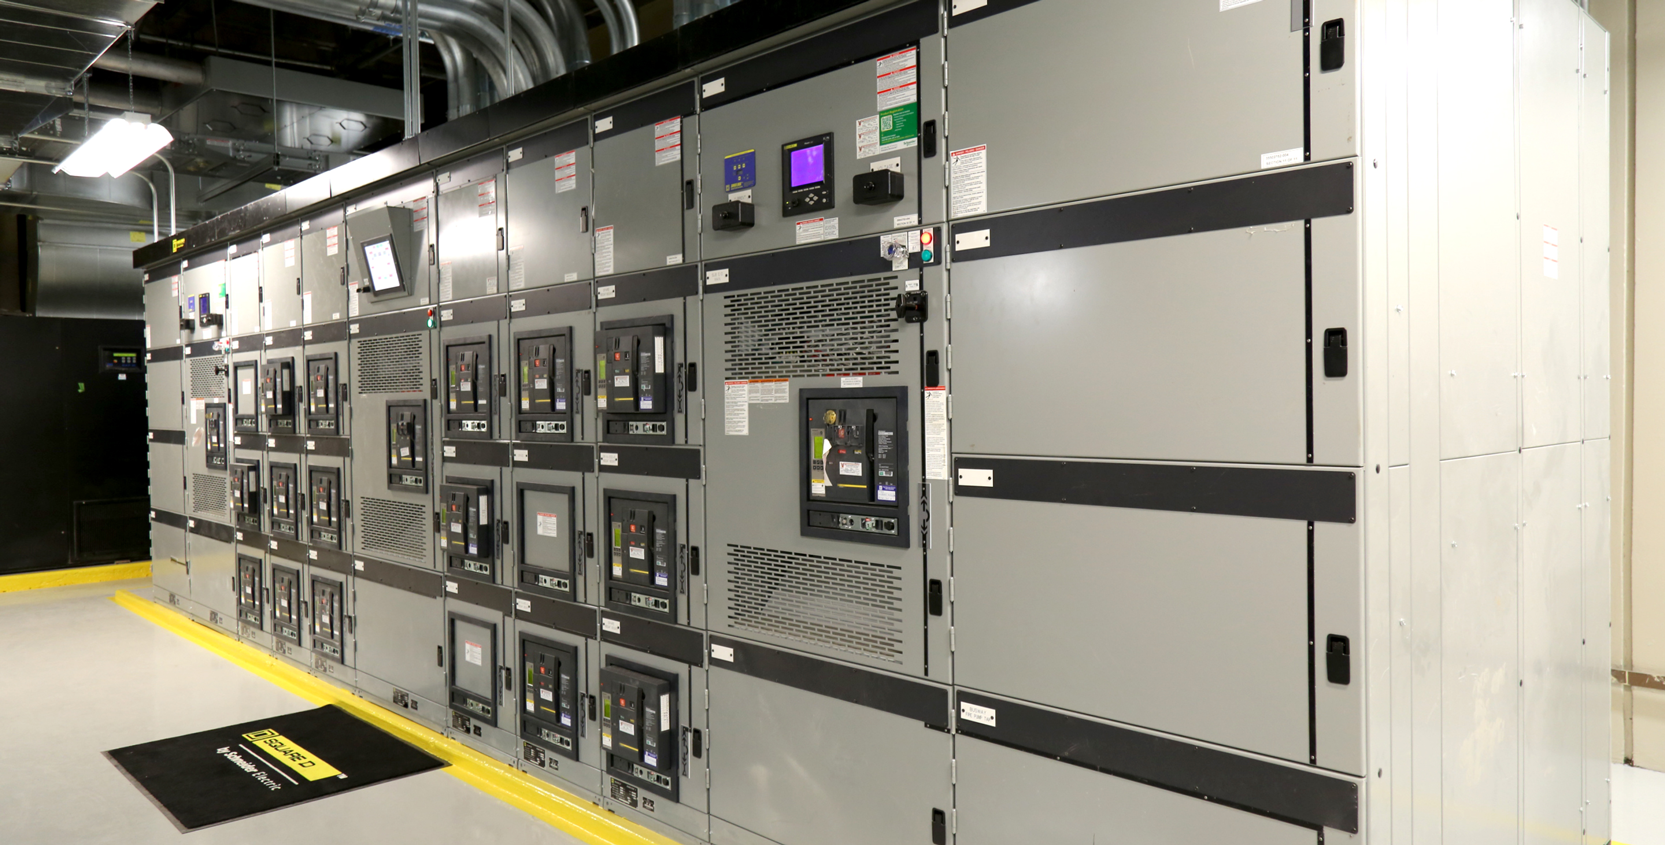 Beaumont-Royal-Oak-Emergency-Power-System-Upgrade-Electrical-5-1665x845